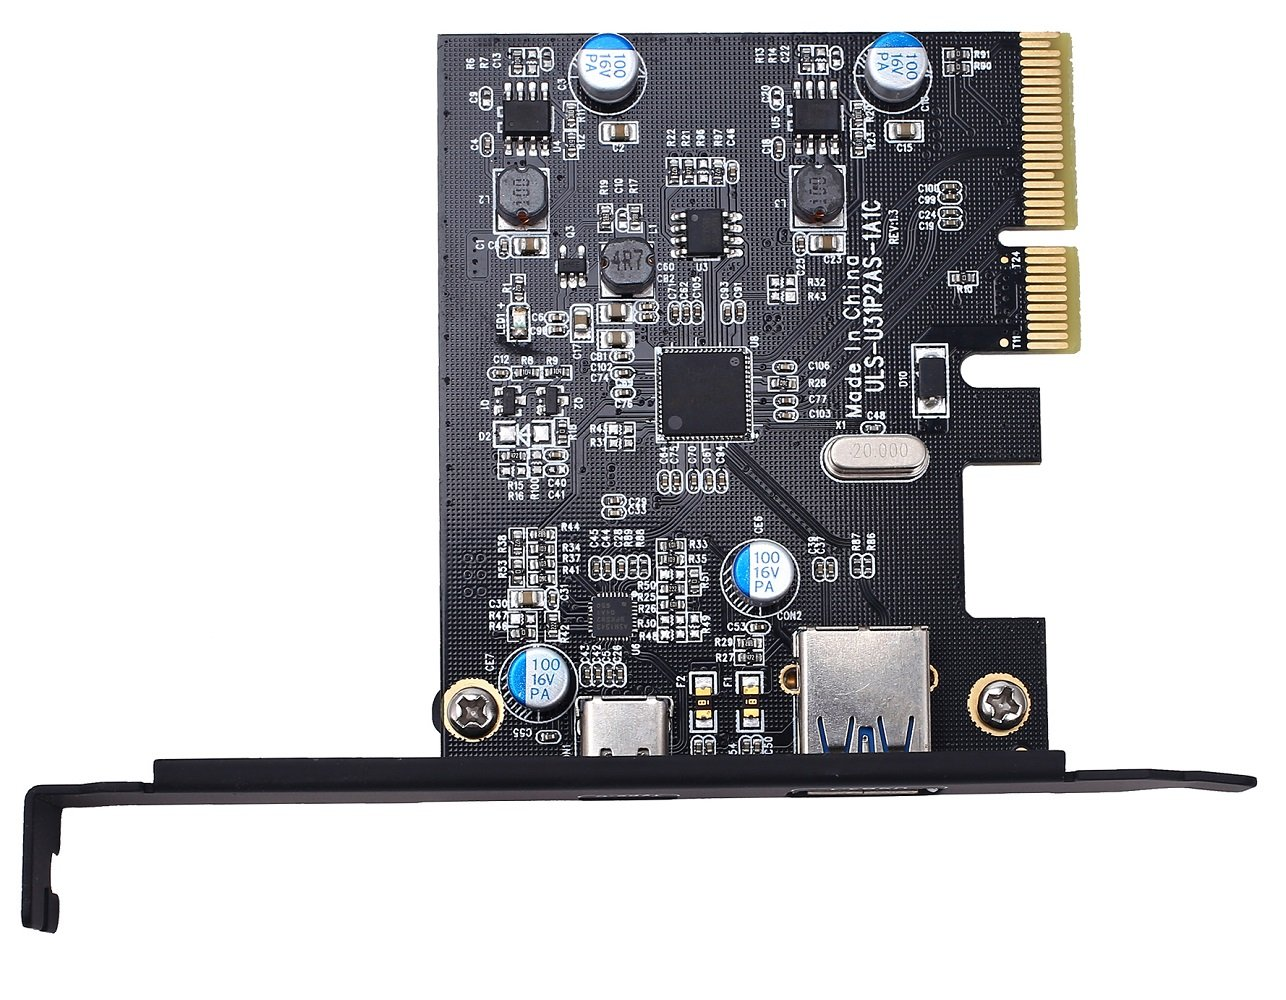 TOTOVIN PCI-E PCI Express to USB 3.1 Gen 2 (10 Gbps) Type A+Type C Expansion Card Asmedia Chipset for Windows 7/8/8.1/10/Linux Kernel (Type A+Type C) by TOTOVIN (Image #4)